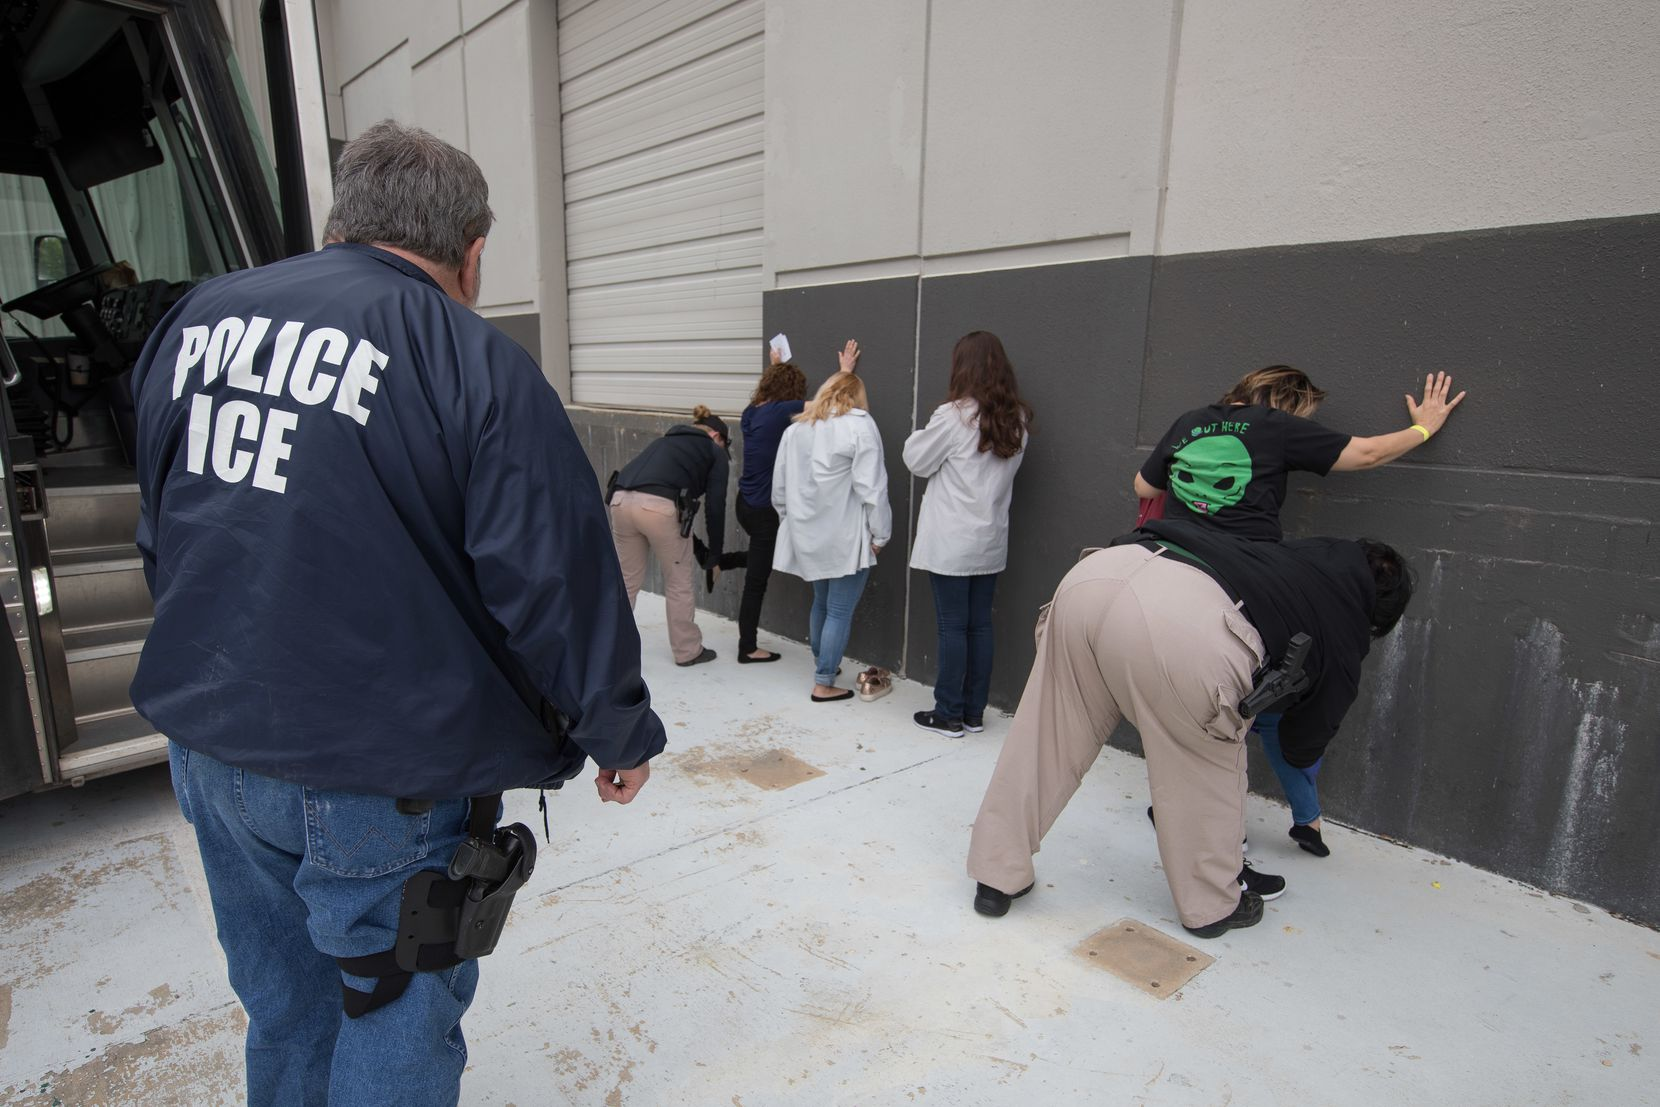 ALLEN, Texas — As part of an ongoing criminal investigation, special agents with U.S. Immigration and Customs Enforcement's (ICE) Homeland Security Investigations (HSI) executed criminal search warrants at CVE Technology Group Inc. (CVE), and four of CVE's staffing companies.